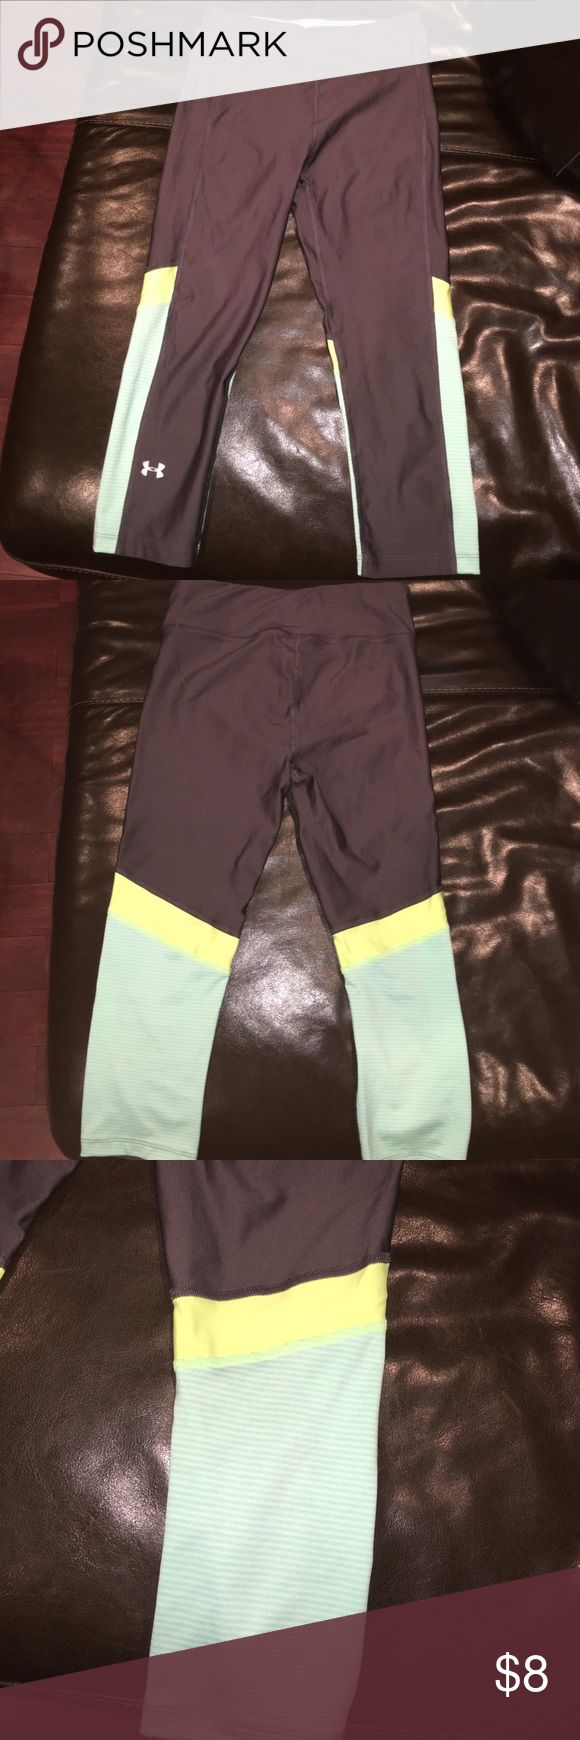 Under Armor Capri Compression Leggings In mint condition and the color mint! Vibrant colors that compliment the grey, very cute leggings and only worn once but they were the wrong size. Under Armour Pants Leggings